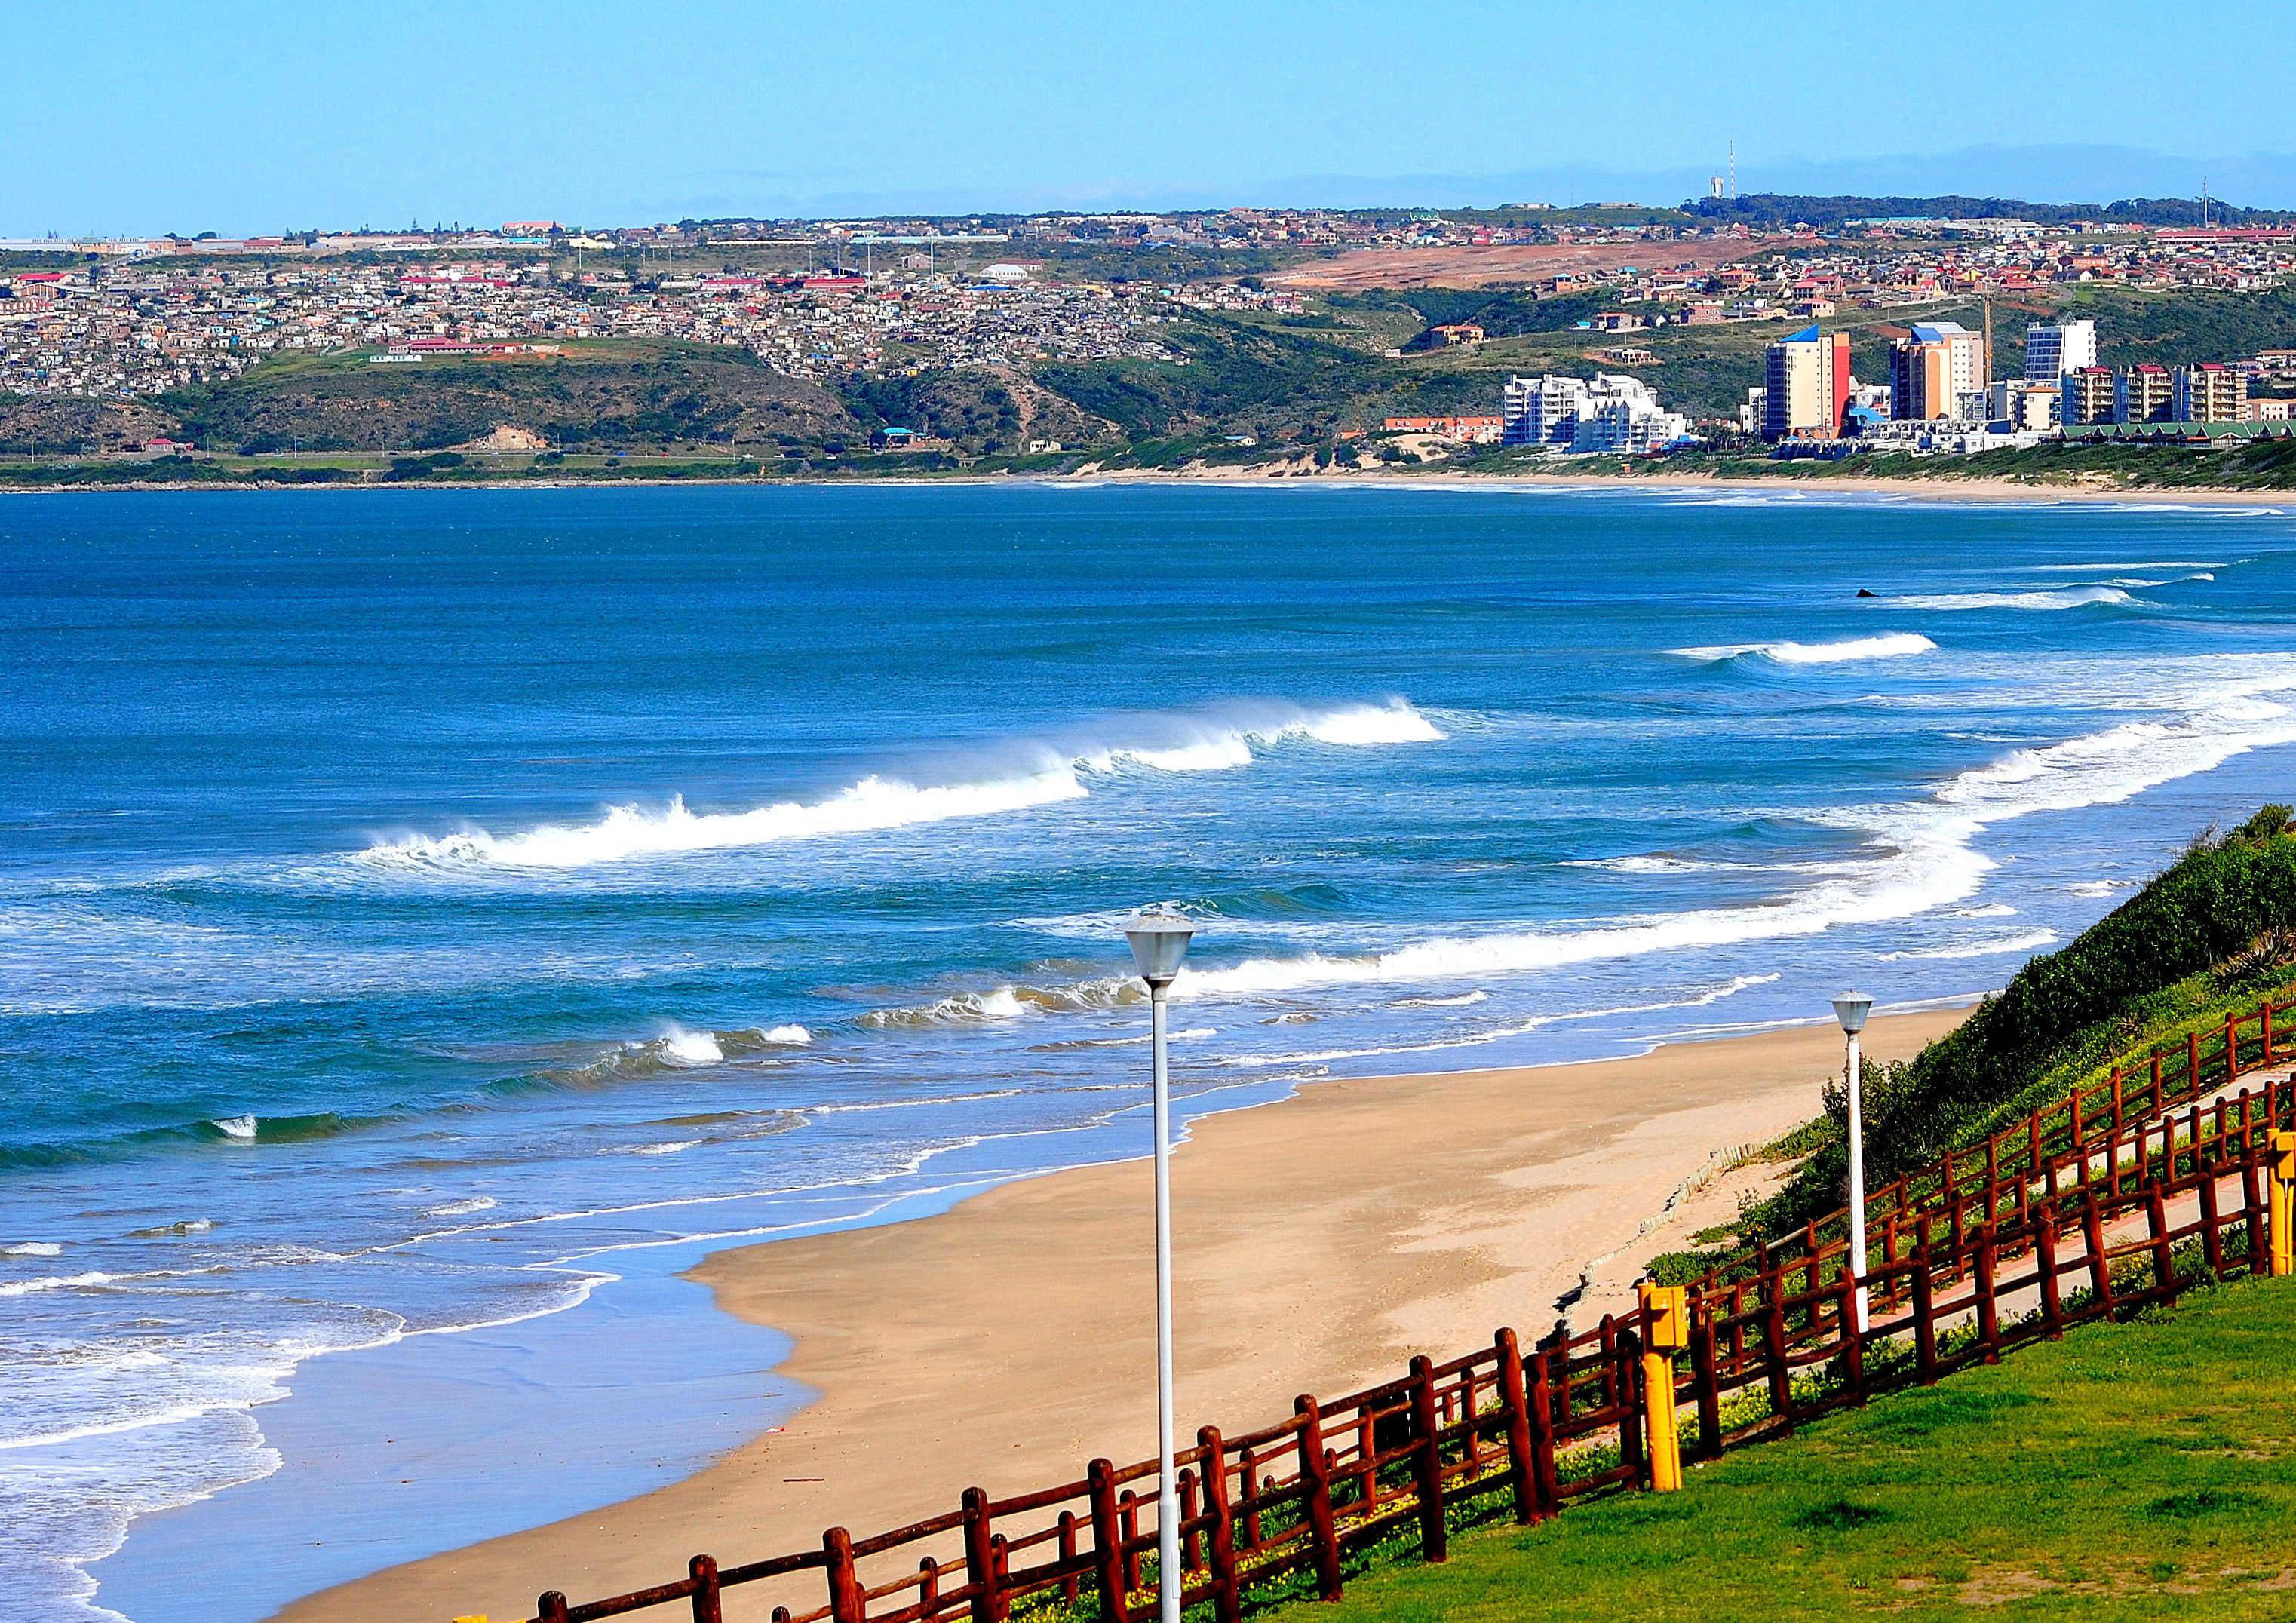 Hartenbos, situated along the Garden Route between Cape